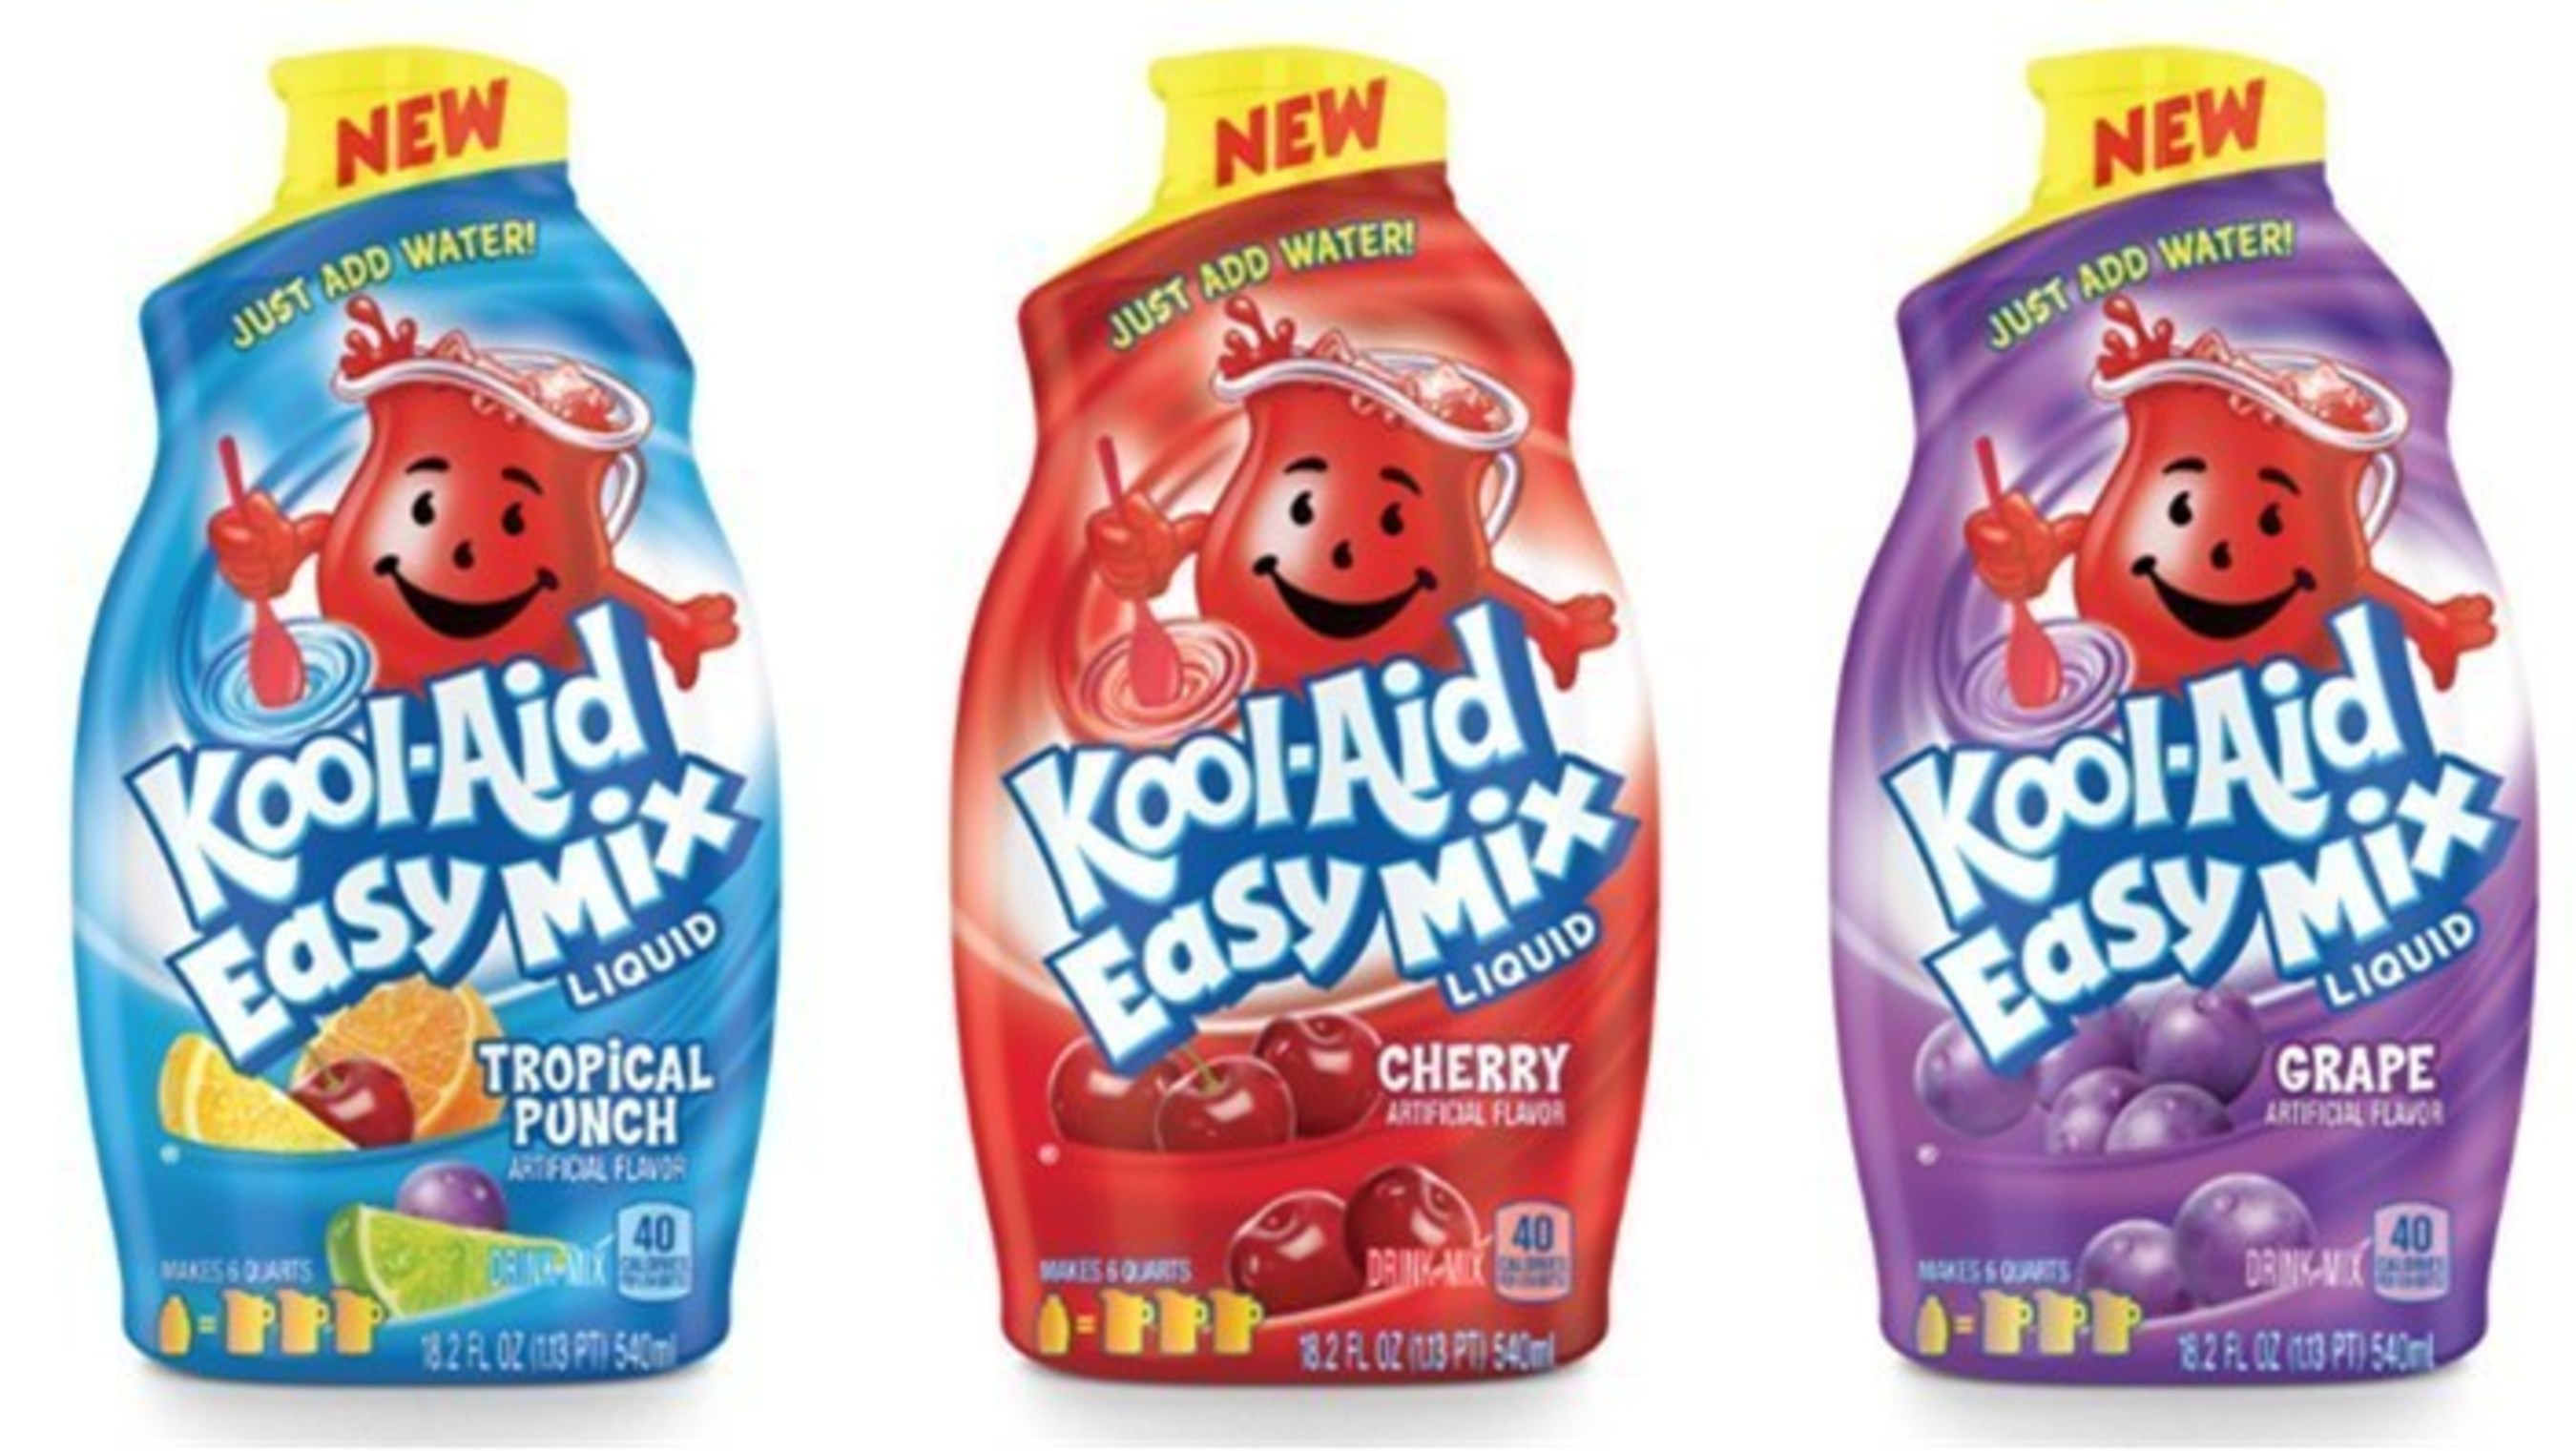 Kool-Aid Man Appears in National Television Spots Launching Today to Debut Kool-Aid Easy Mix